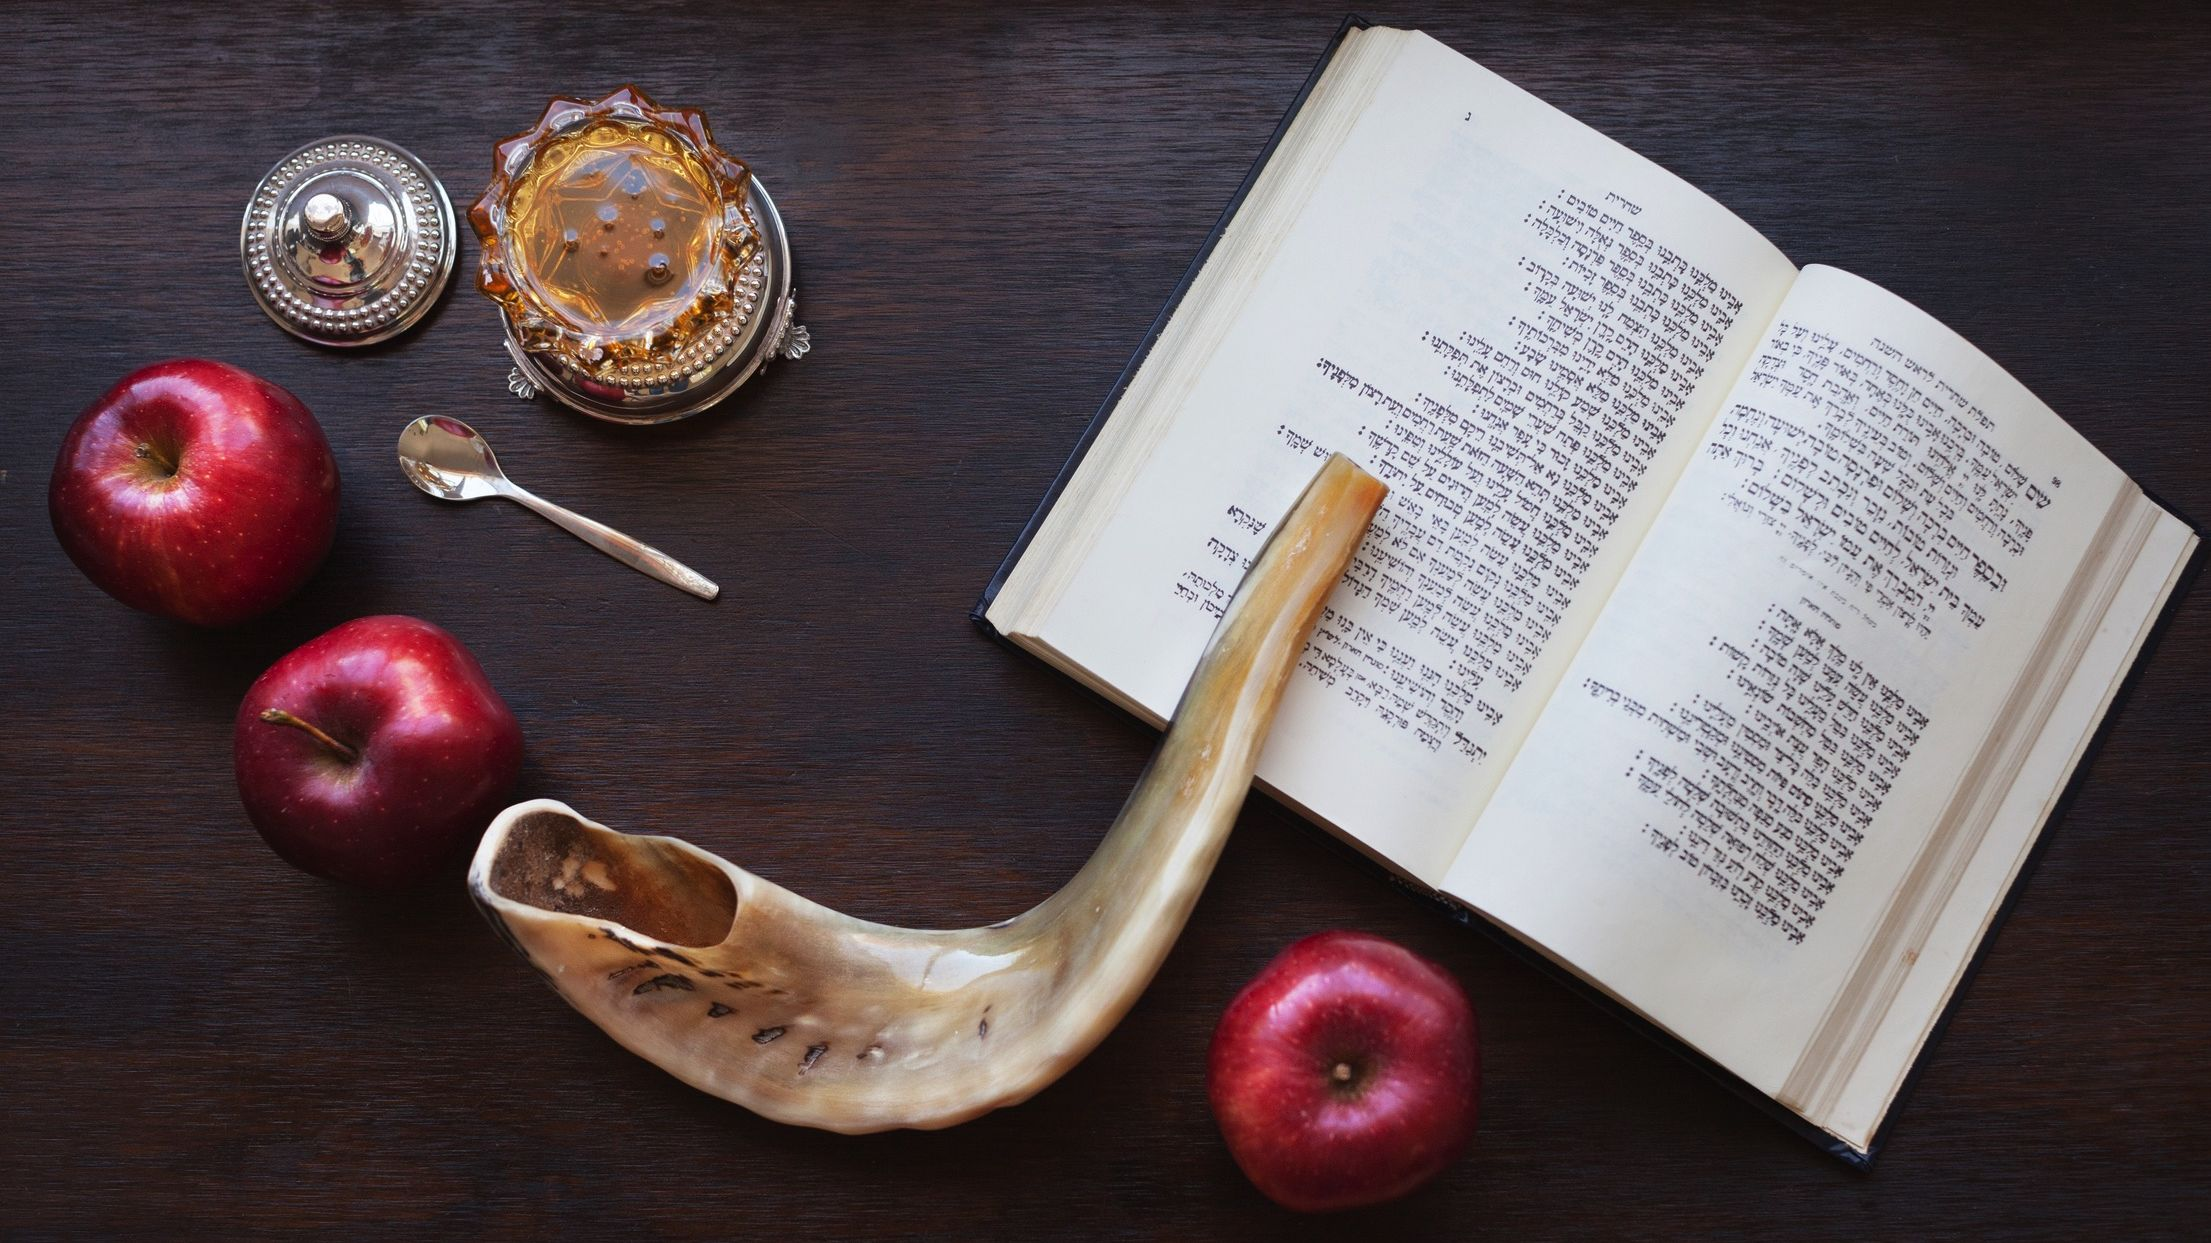 Facts About Rosh Hashanah